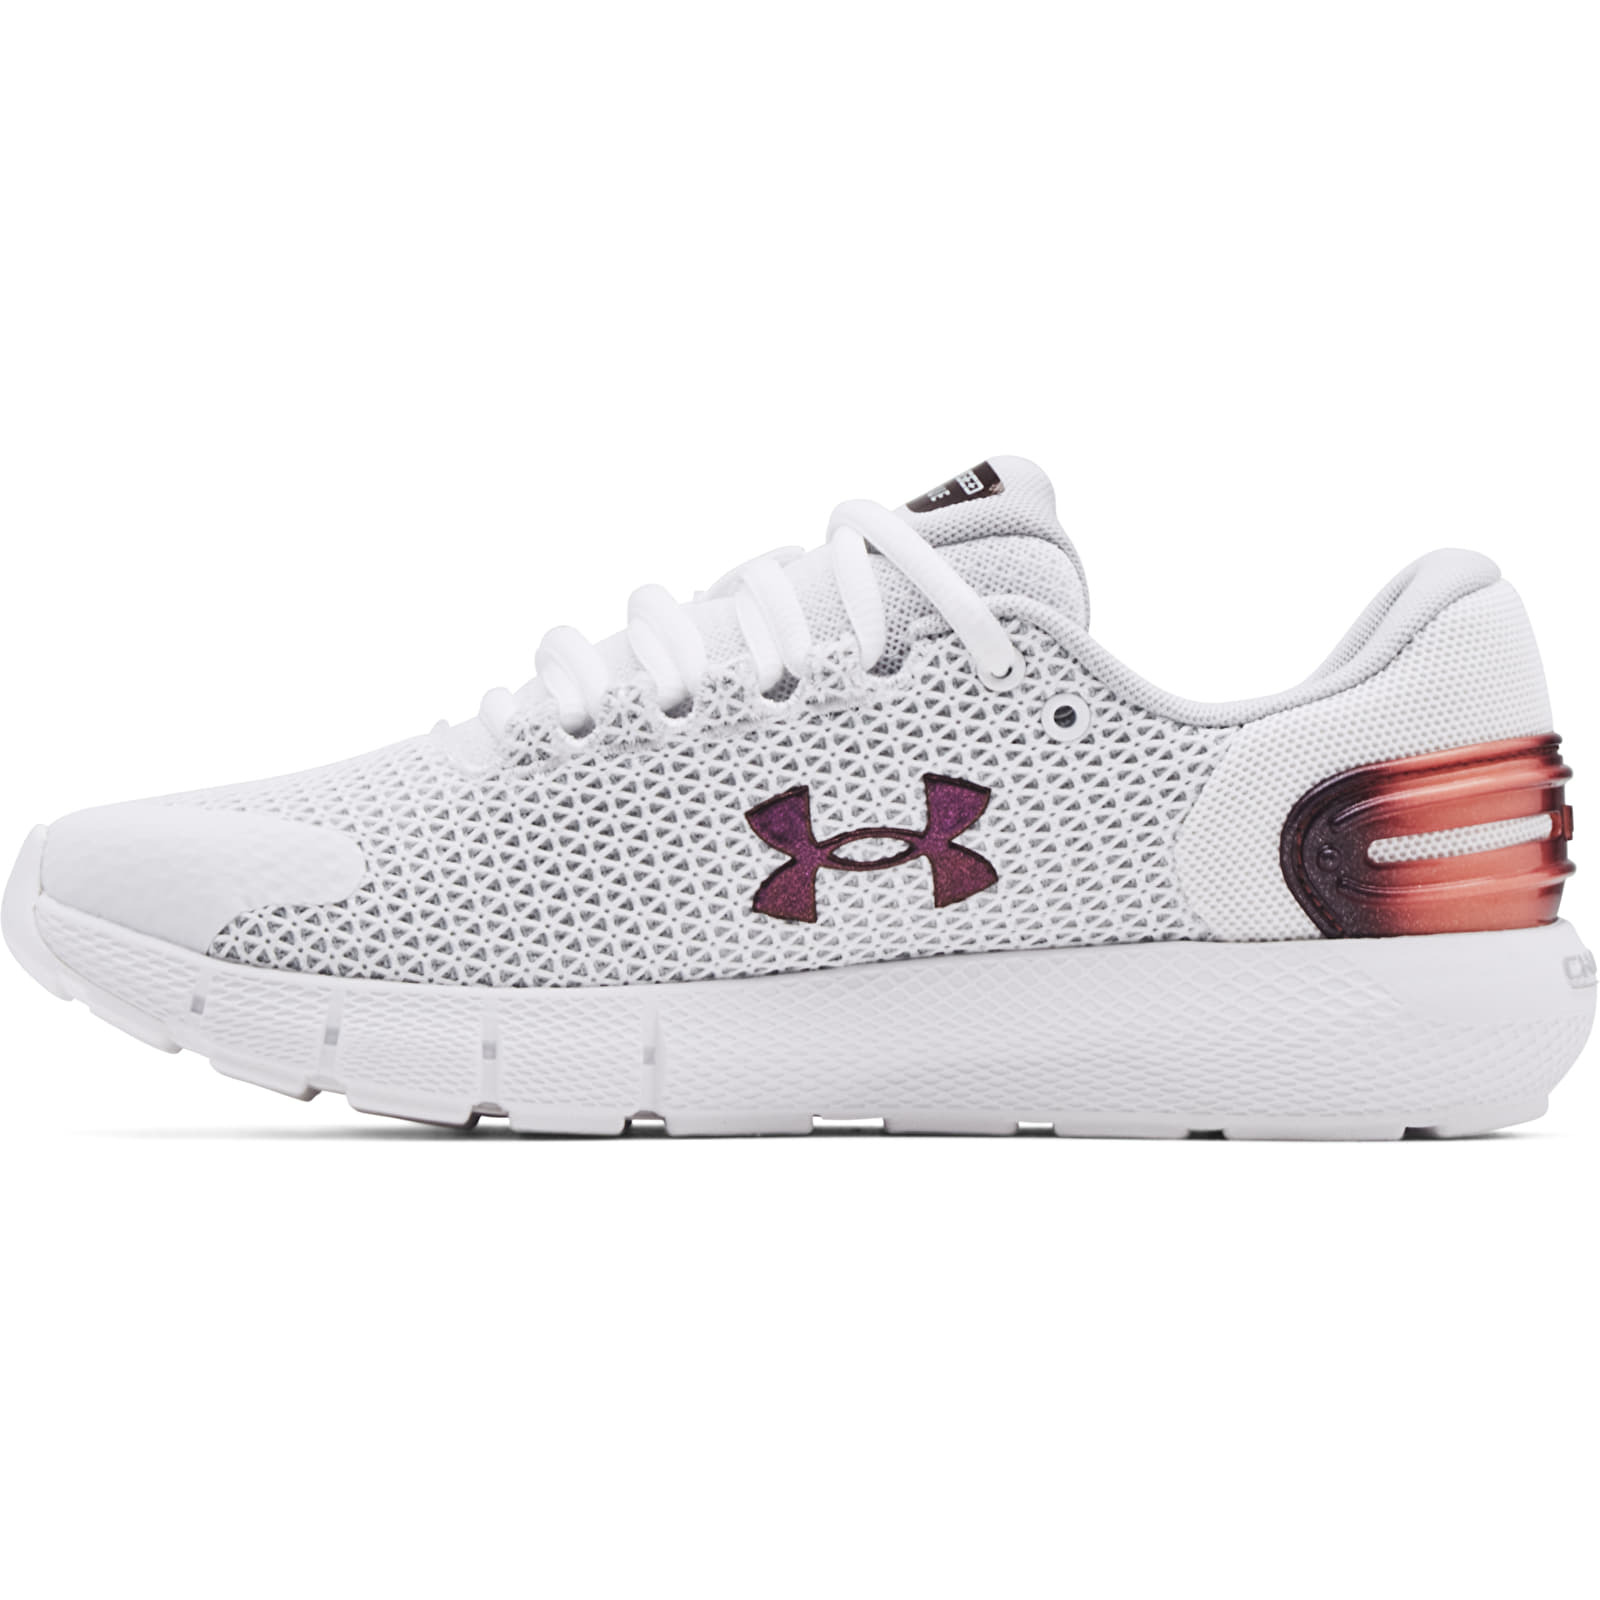 Under Armour W Charged Rogue2.5 ClrSft White 3024478-100